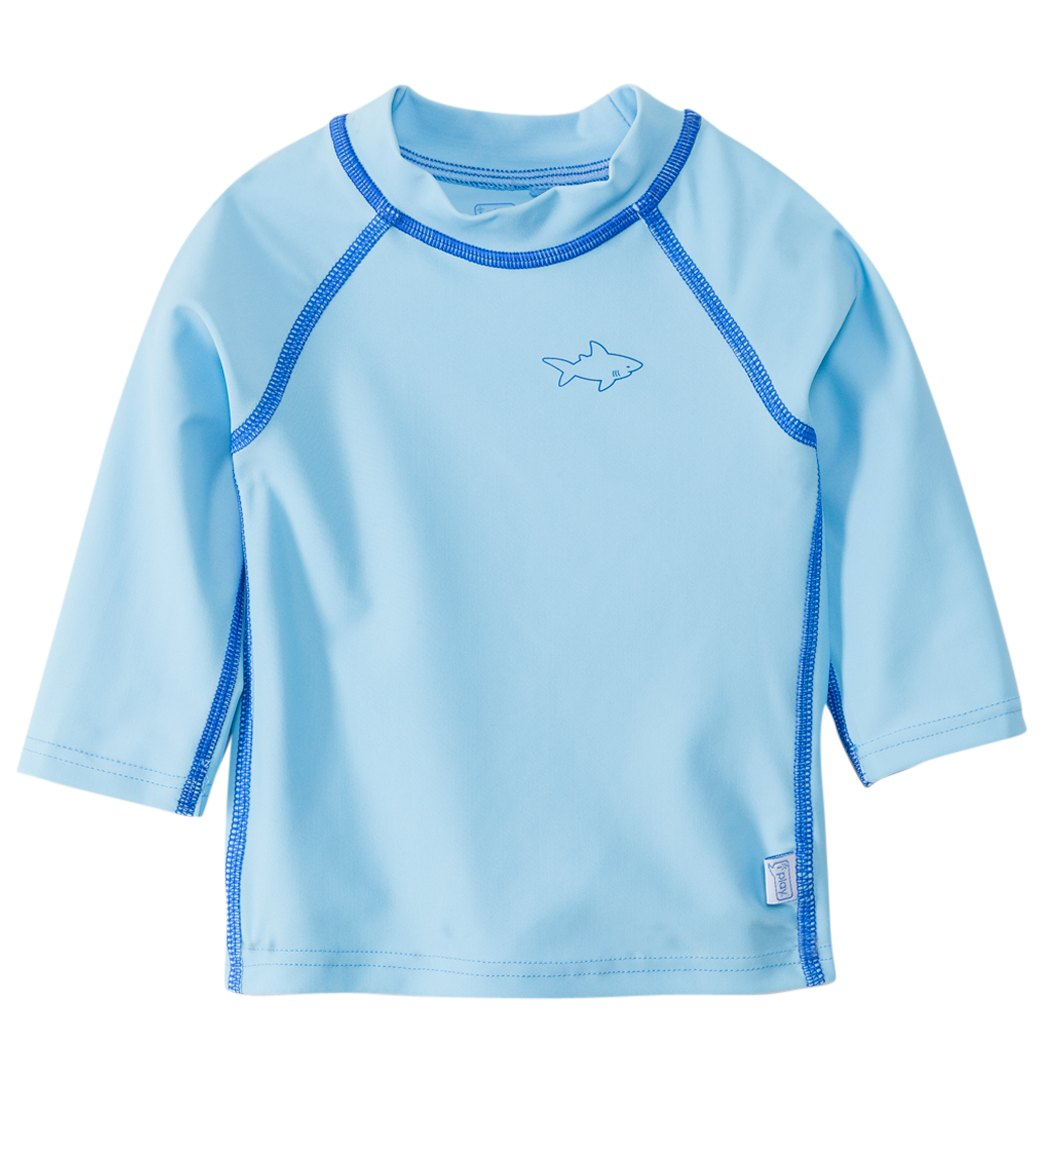 6b183c03 Toddler Girls' Rash Guards at SwimOutlet.com